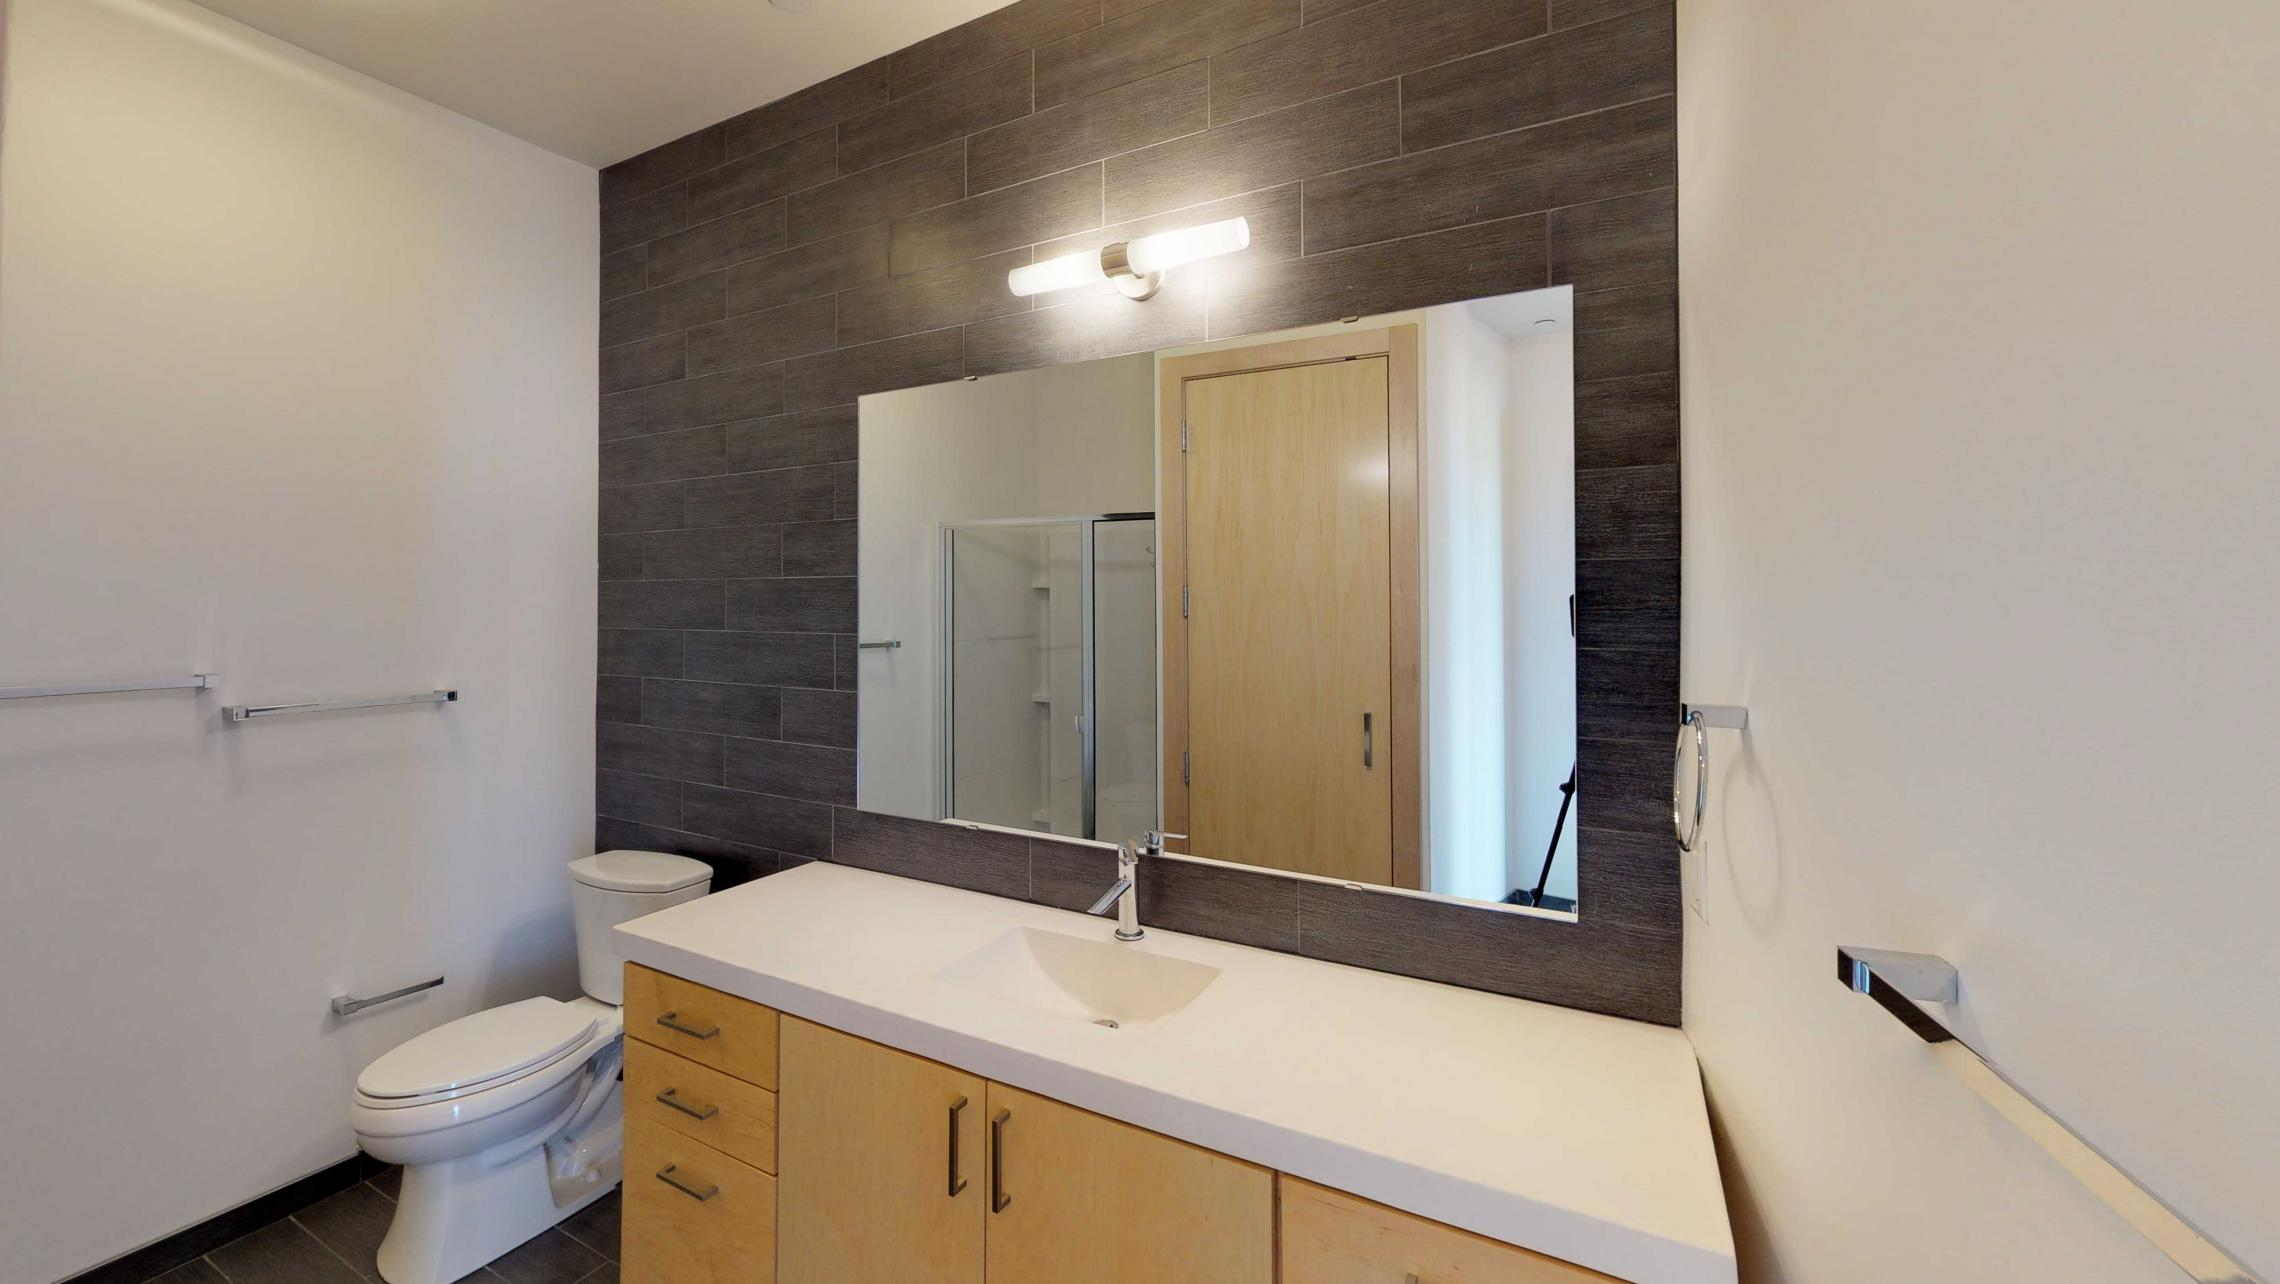 SEVEN27-Apartment-312-Modern-Upscale-Views-City-Downtown-Madison-Lake-Terrace-Bathroom-Luxury.jpg